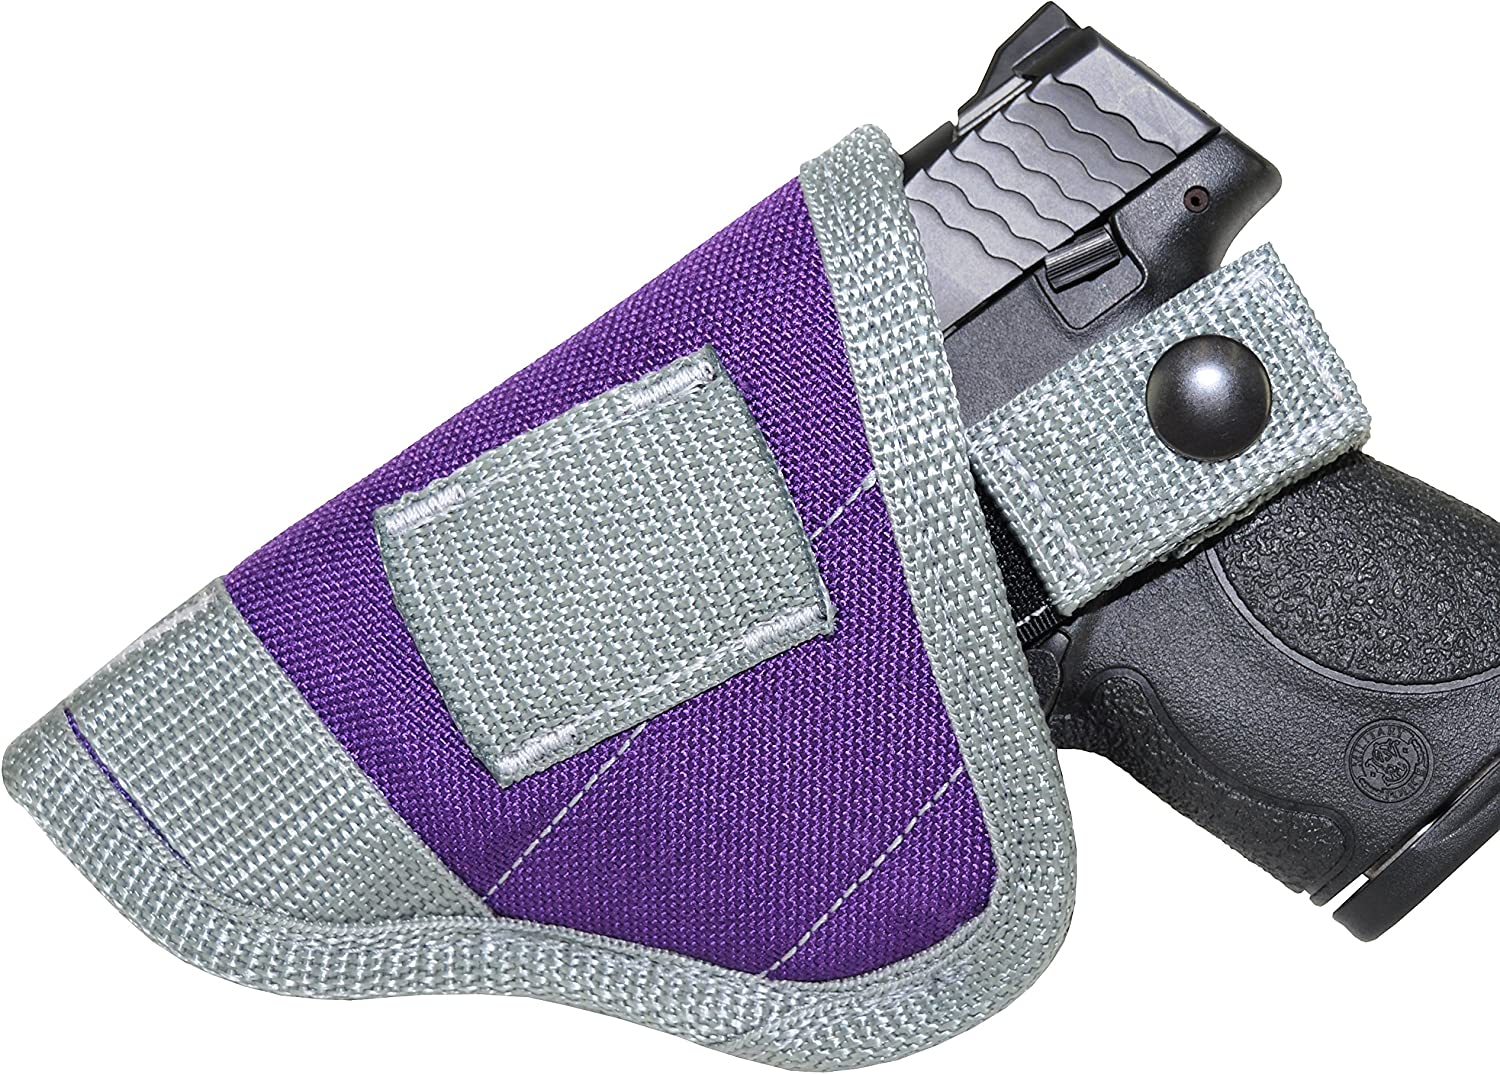 Crossfire Elite Women's Pulse Micro Holster, Ambidextrous